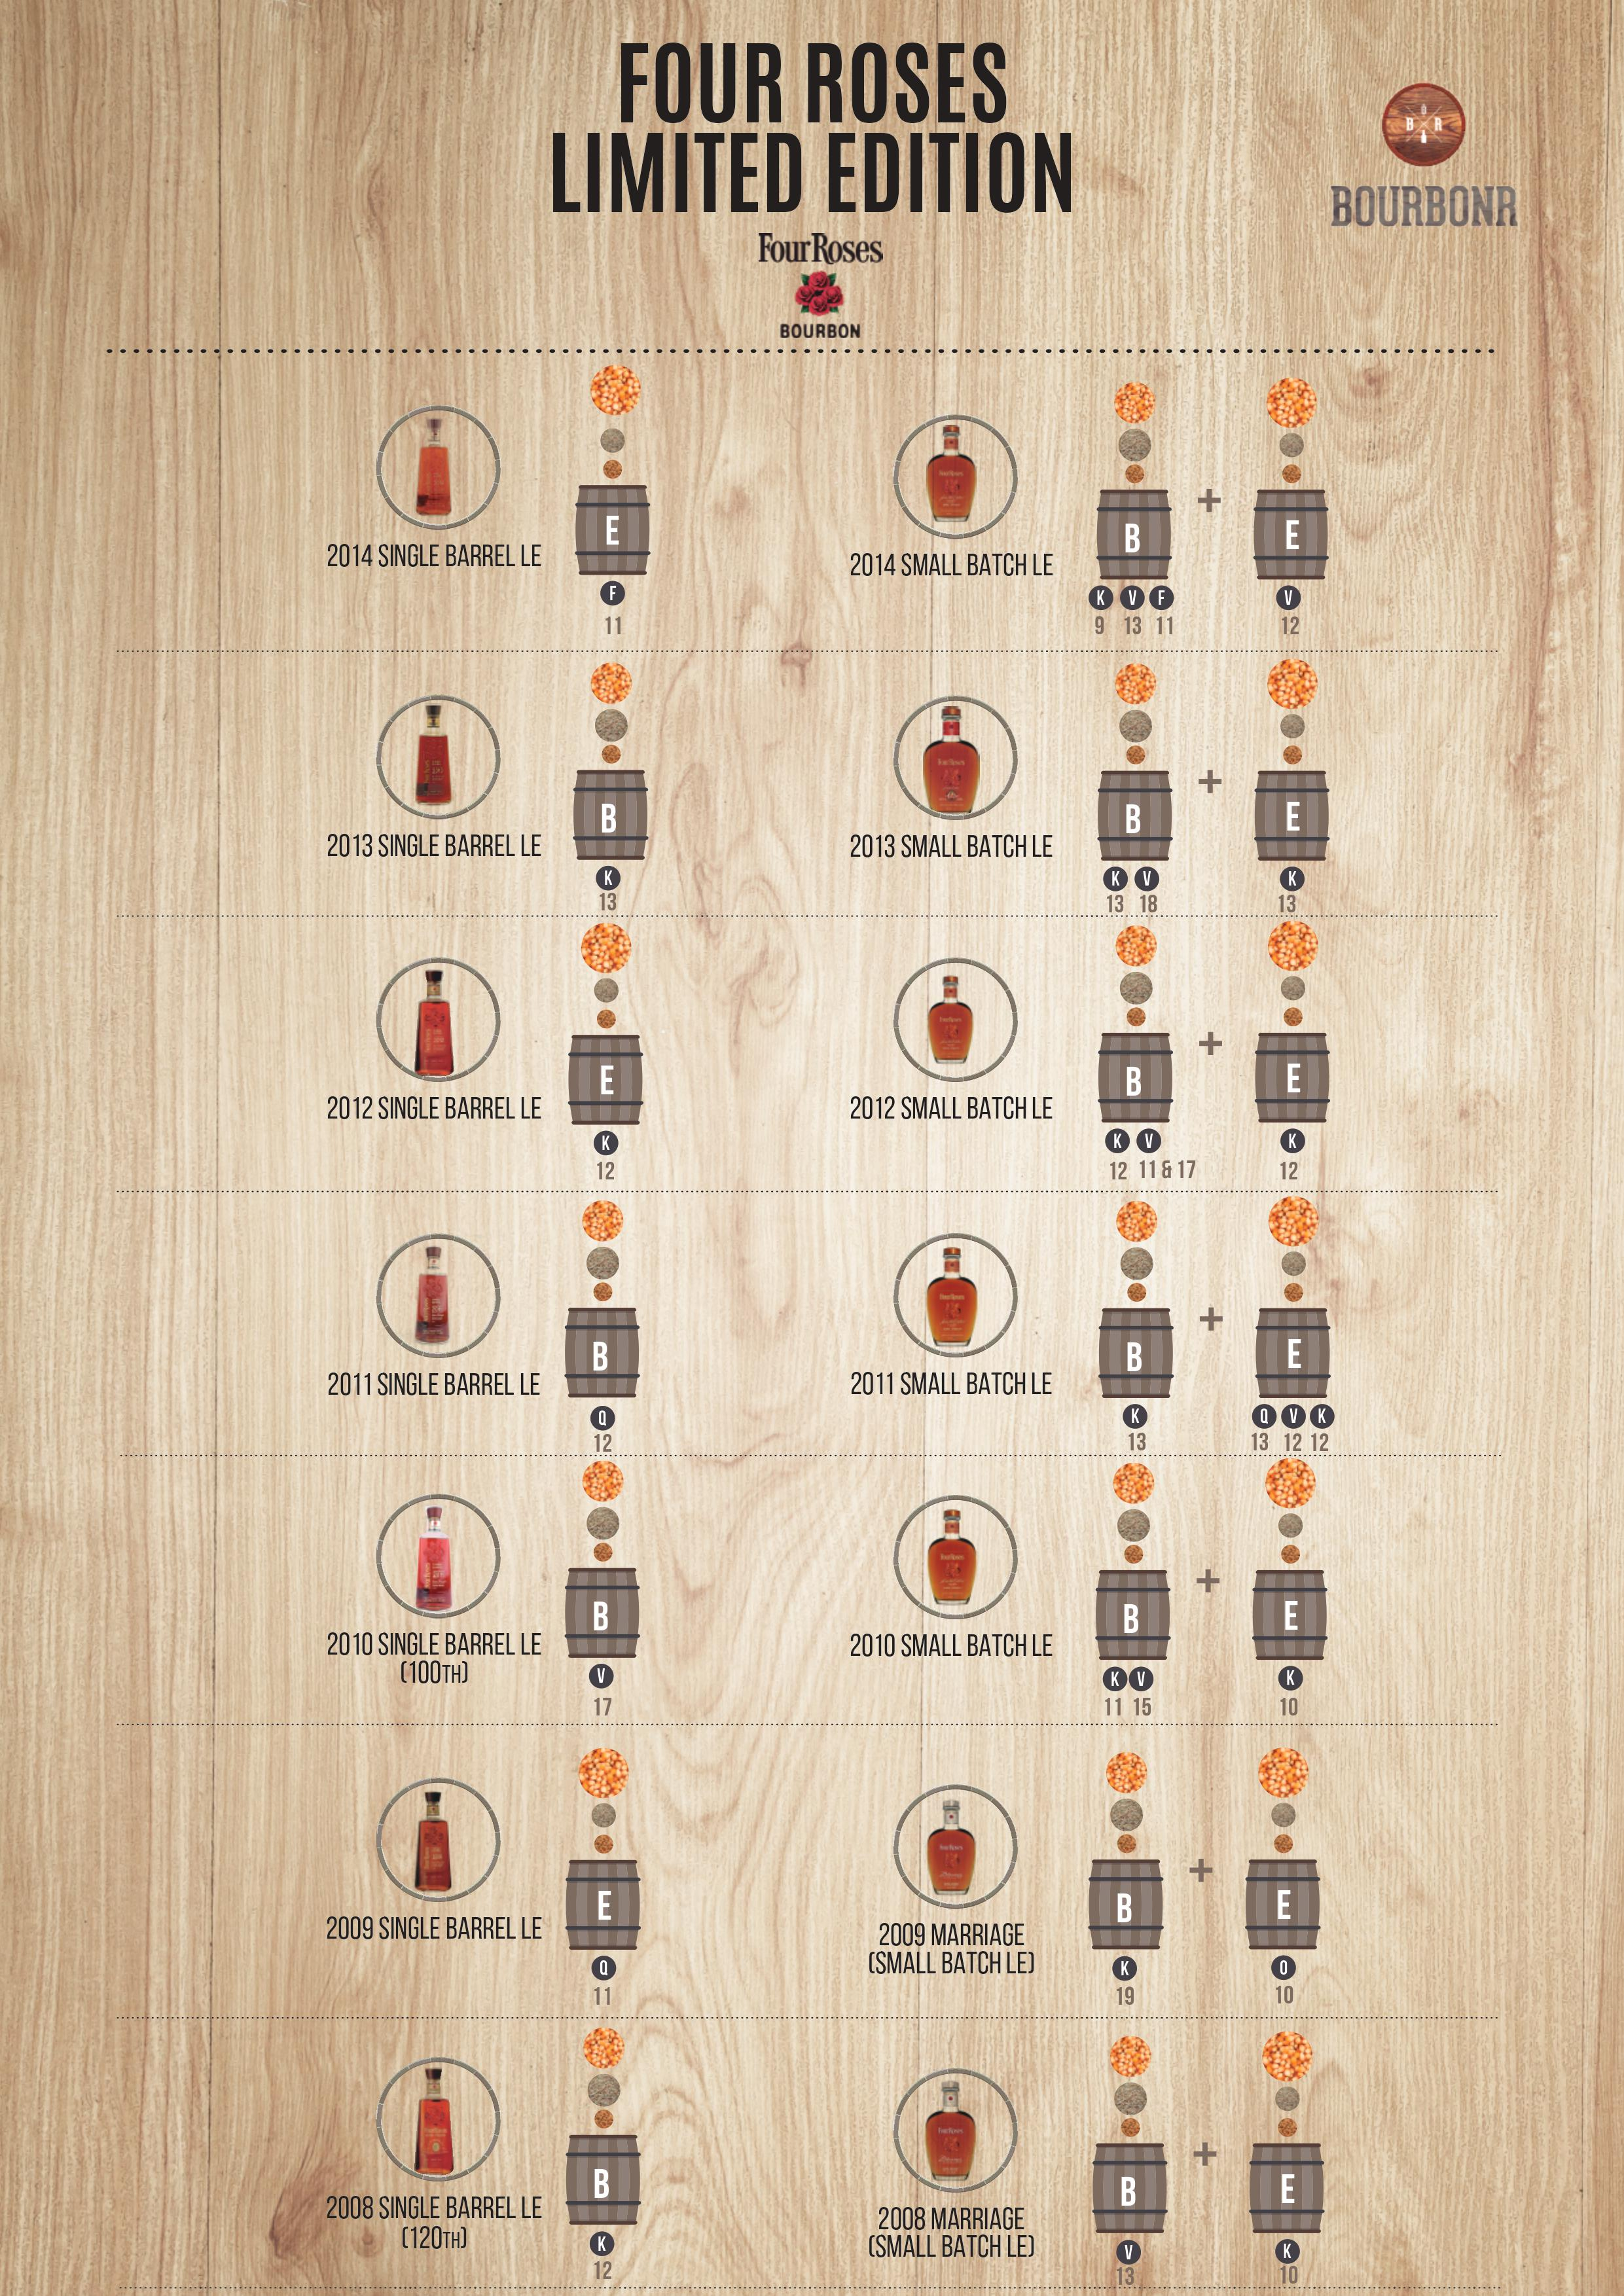 Four Roses Limited Edition Cheat Sheet